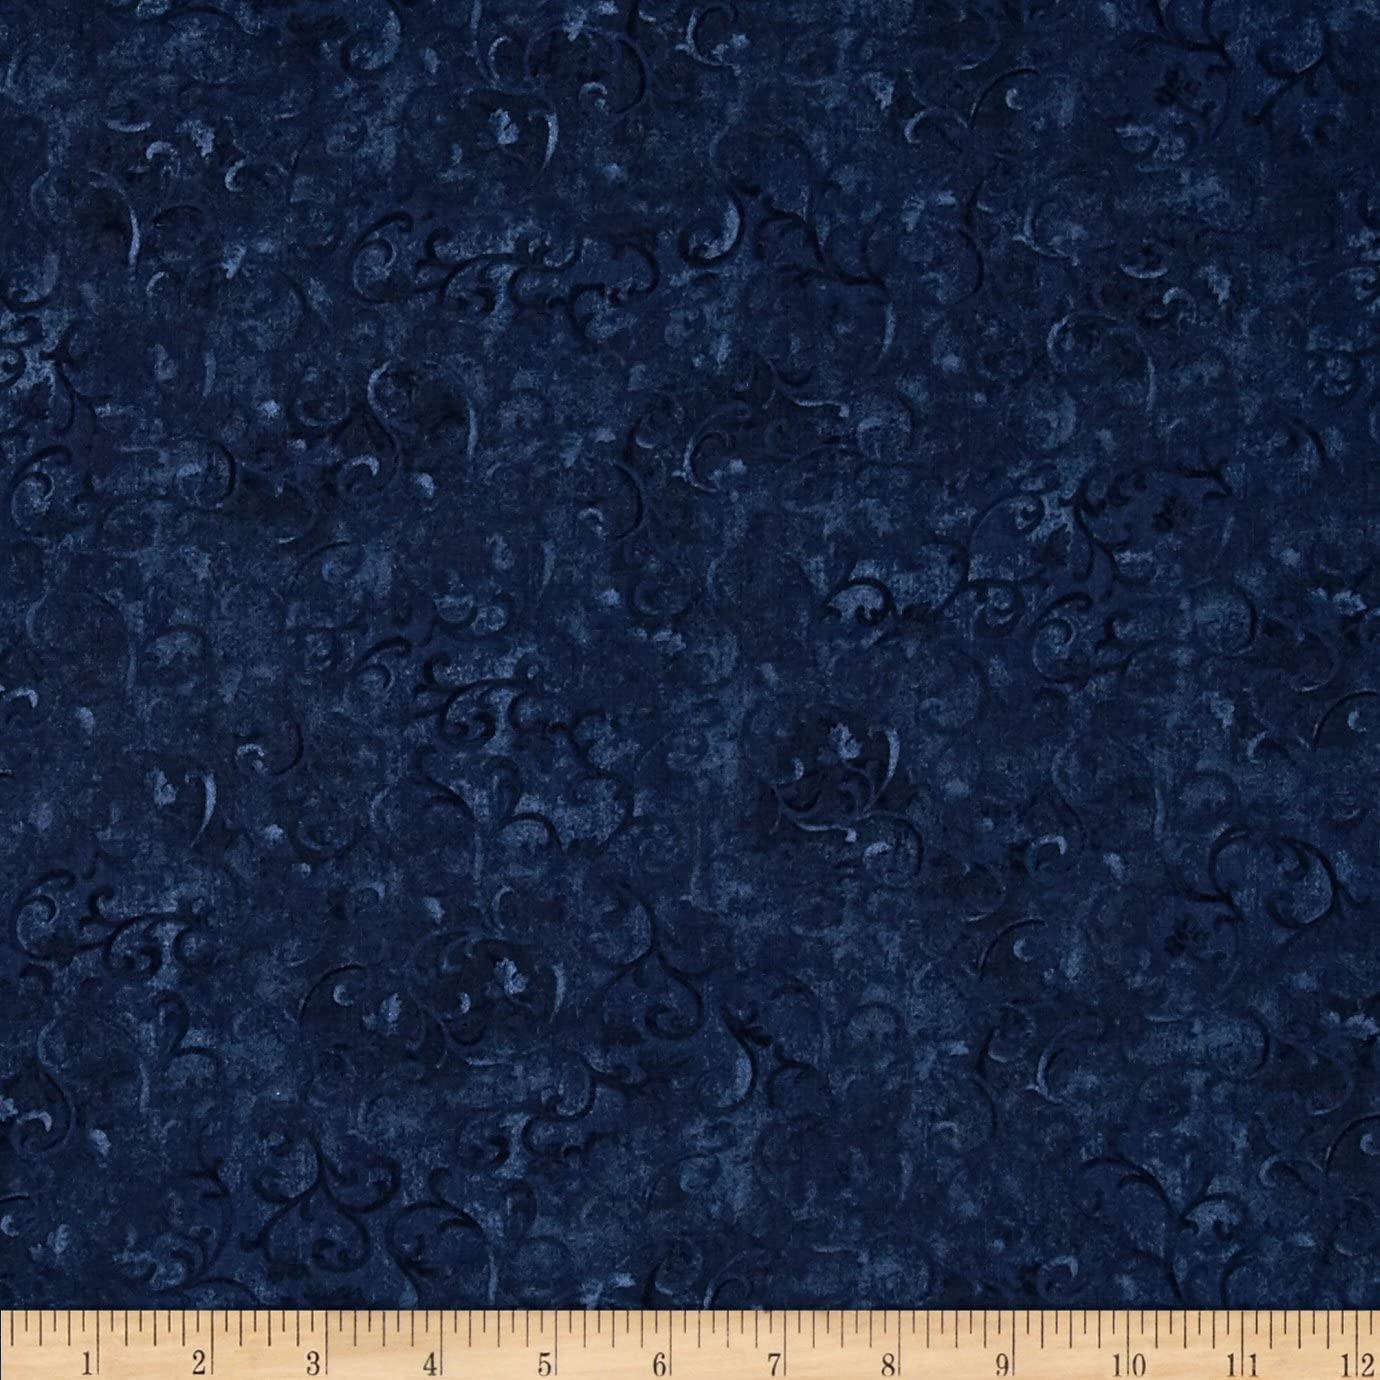 Wilmington Prints Essentials Scroll True Fabric, Navy, Fabric by the yard